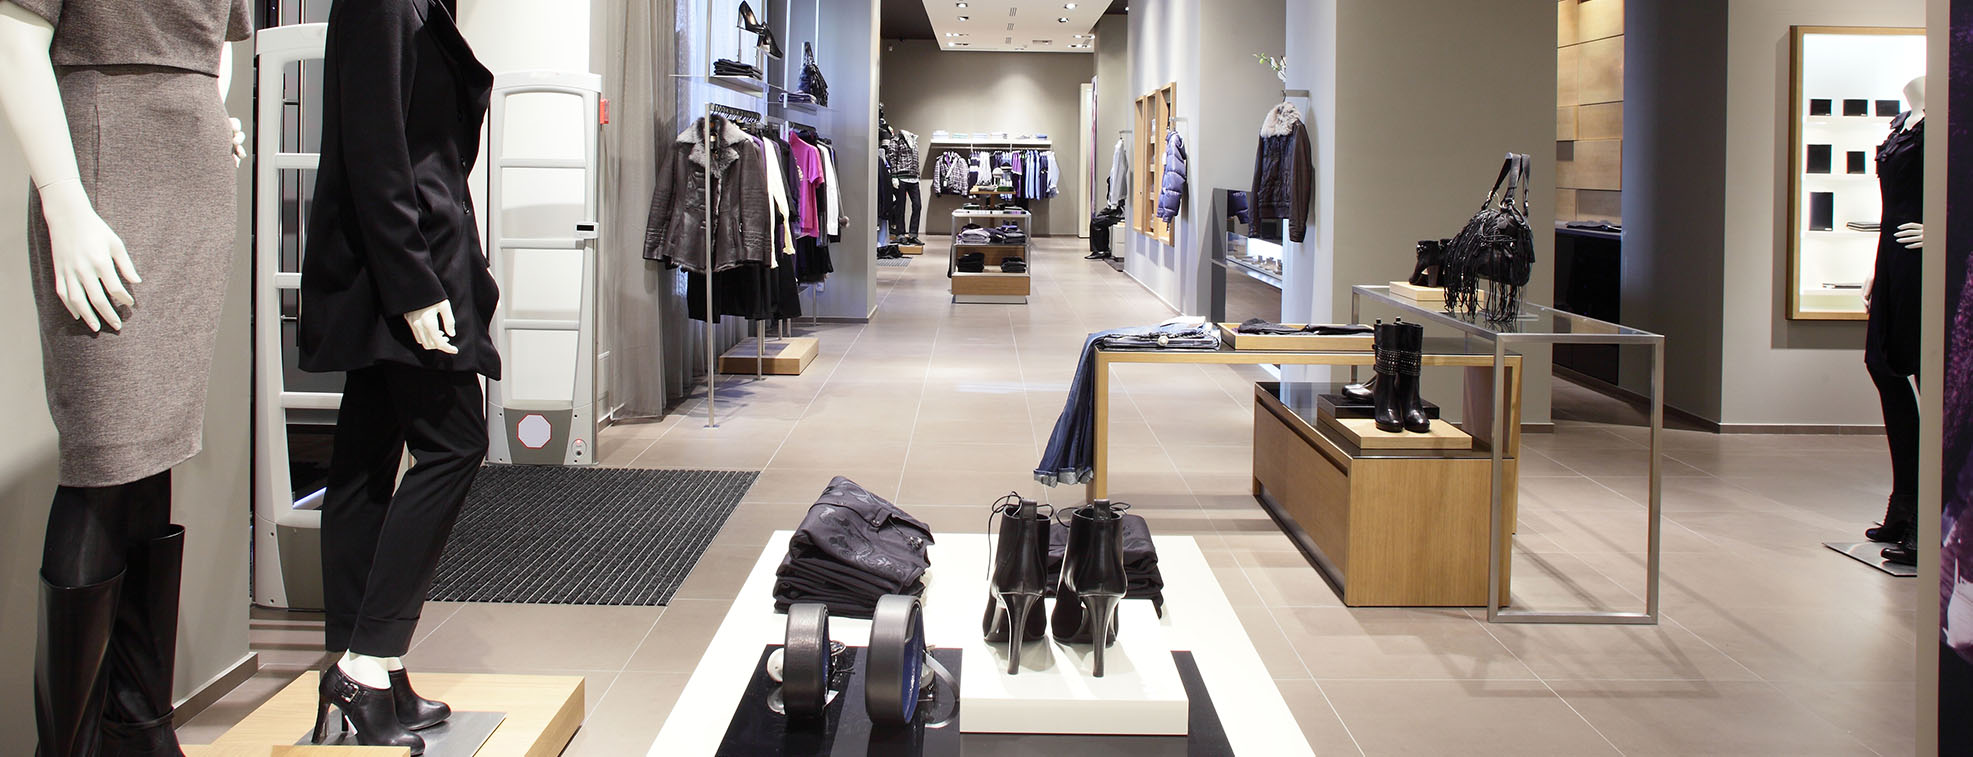 Luxurious store layout with simple shelves and tables in the middle